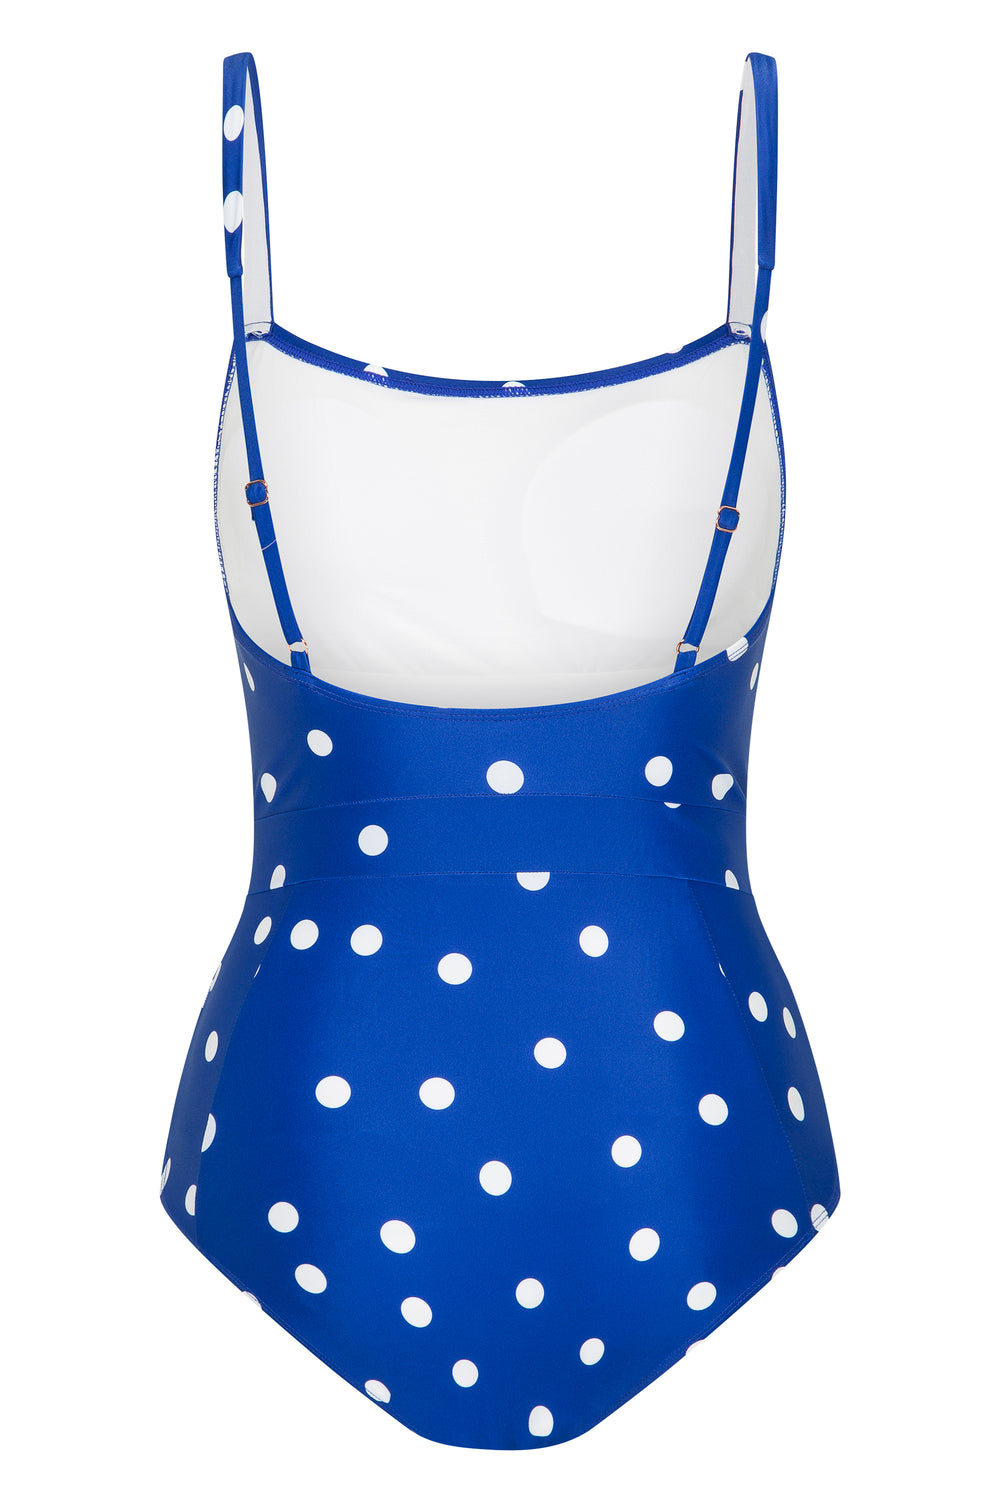 Petal One Piece In Cobalt Spot